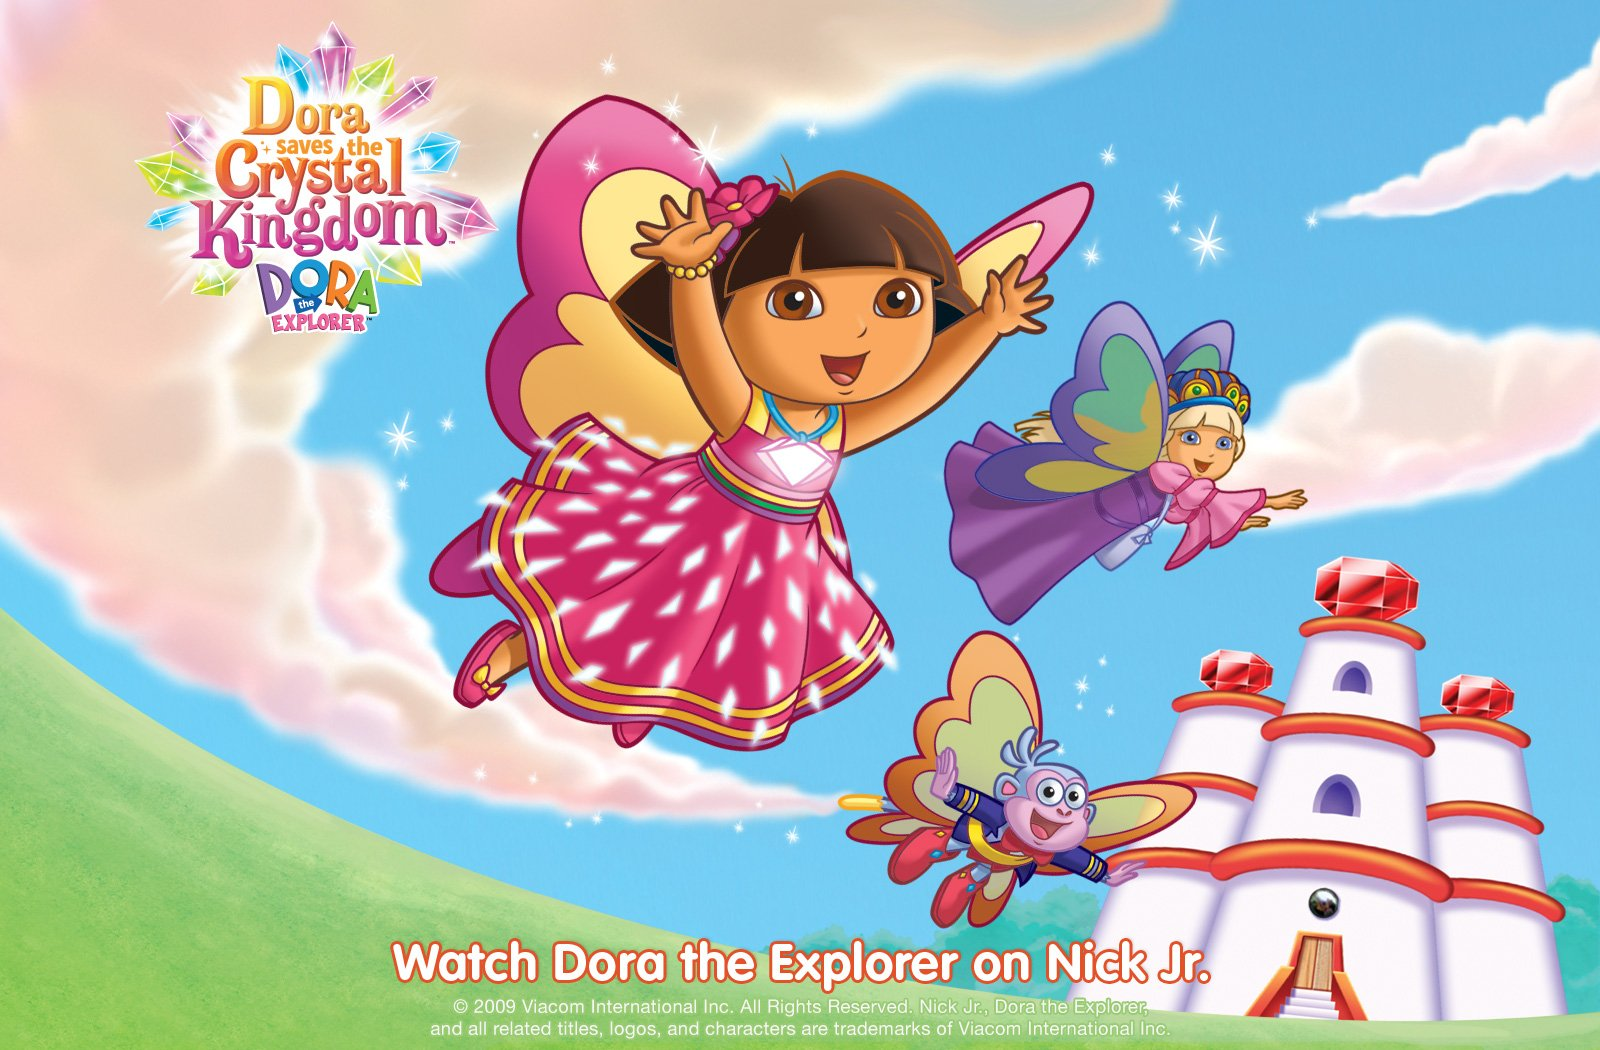 Dora the Explorer f wallpaper 1600x1050 184635 1600x1050